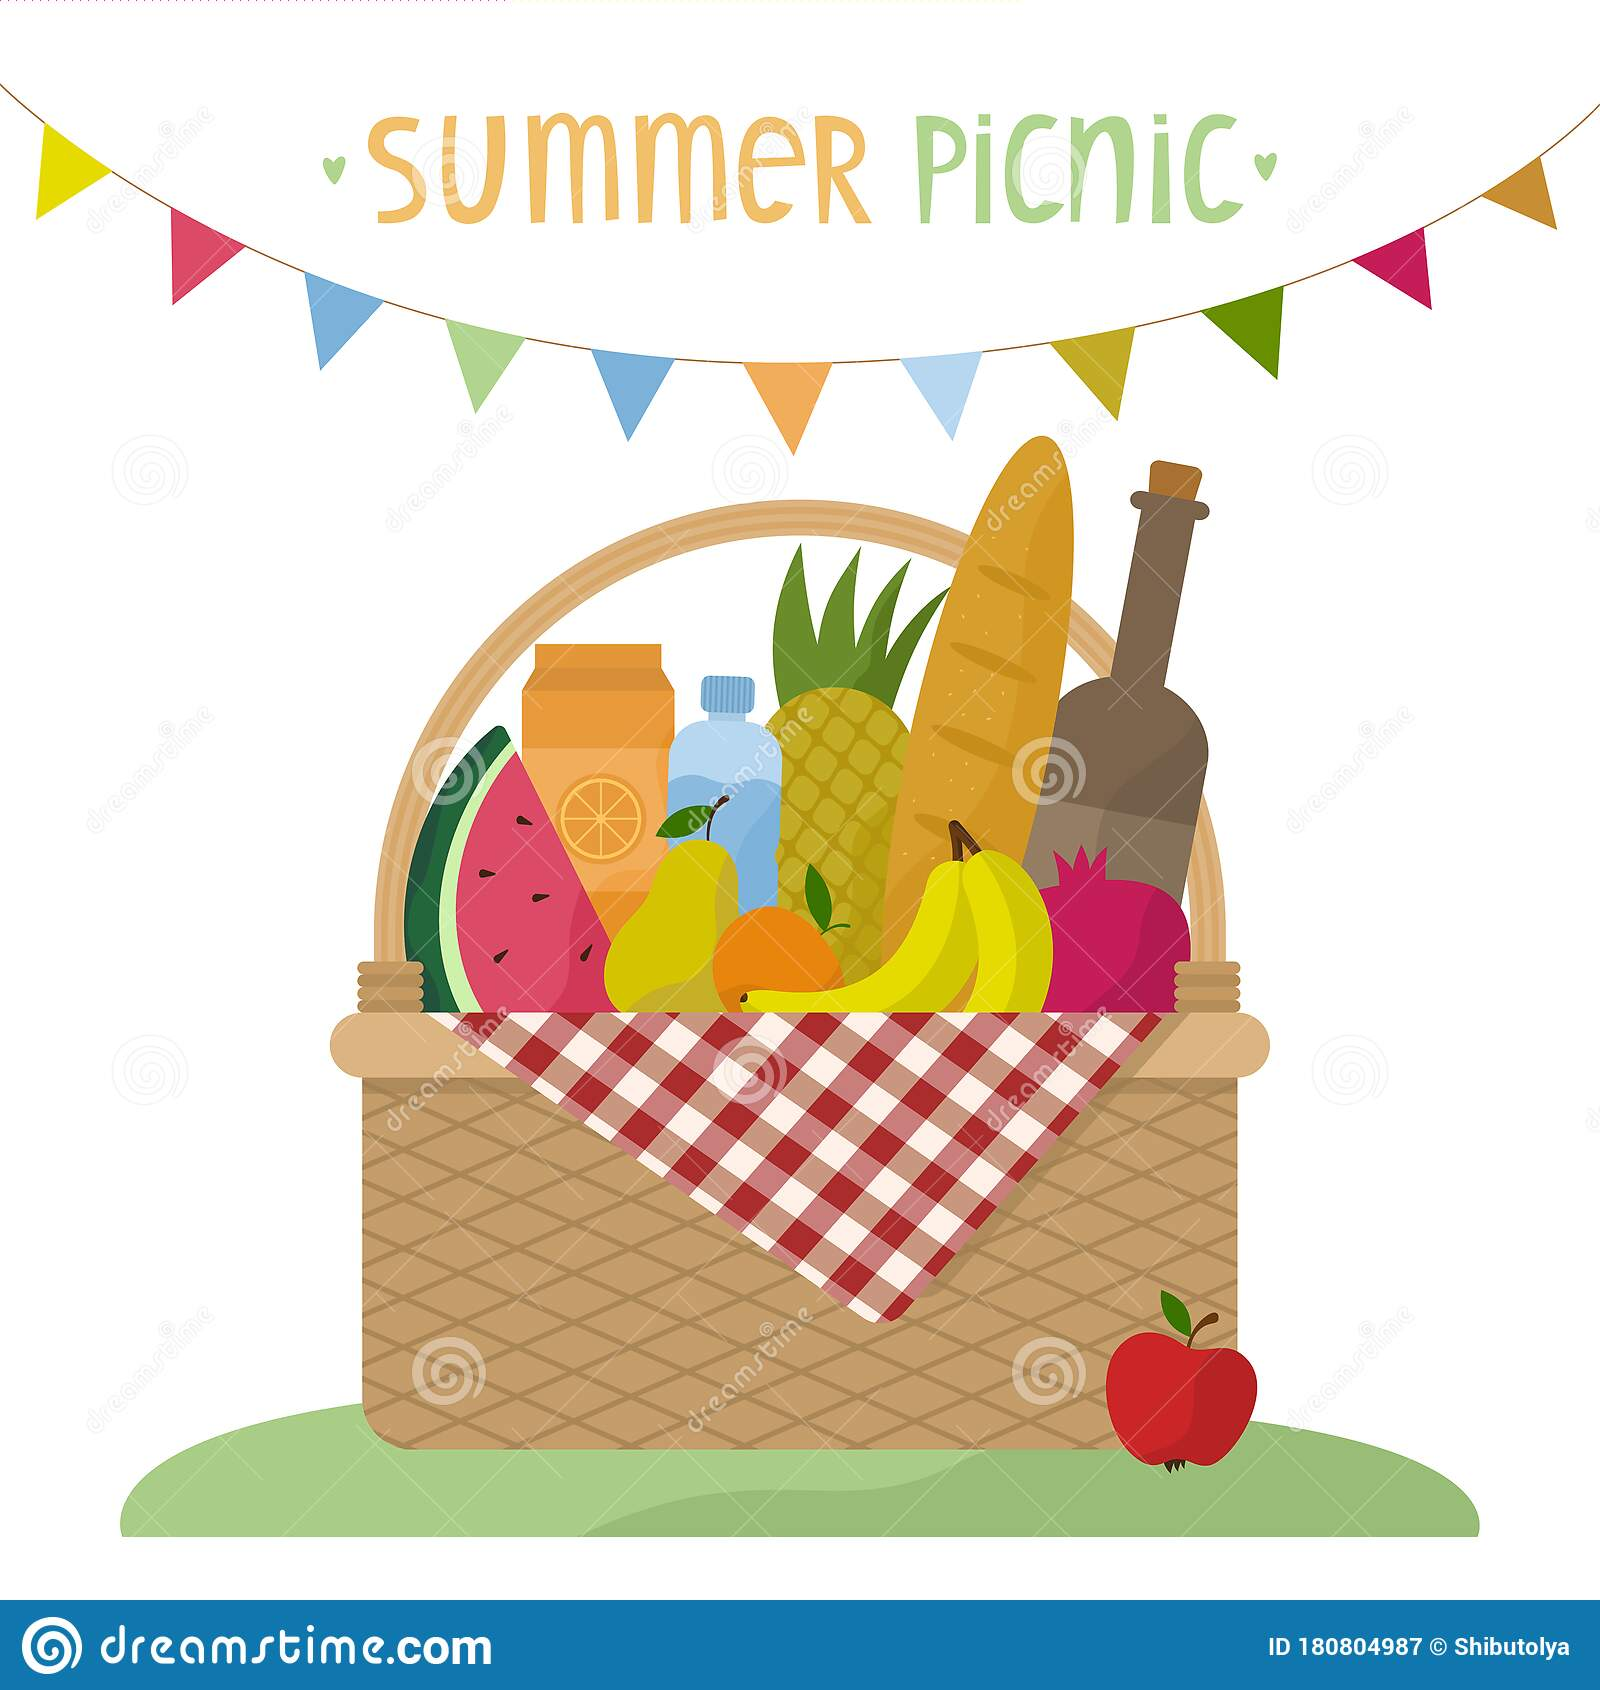 Vector Illustration Of A Wicker Picnic Basket With A Blanket Basket With Food Drinks And A Garland Of Flags Flat Style Stock Vector Illustration Of Drinks Meal 180804987